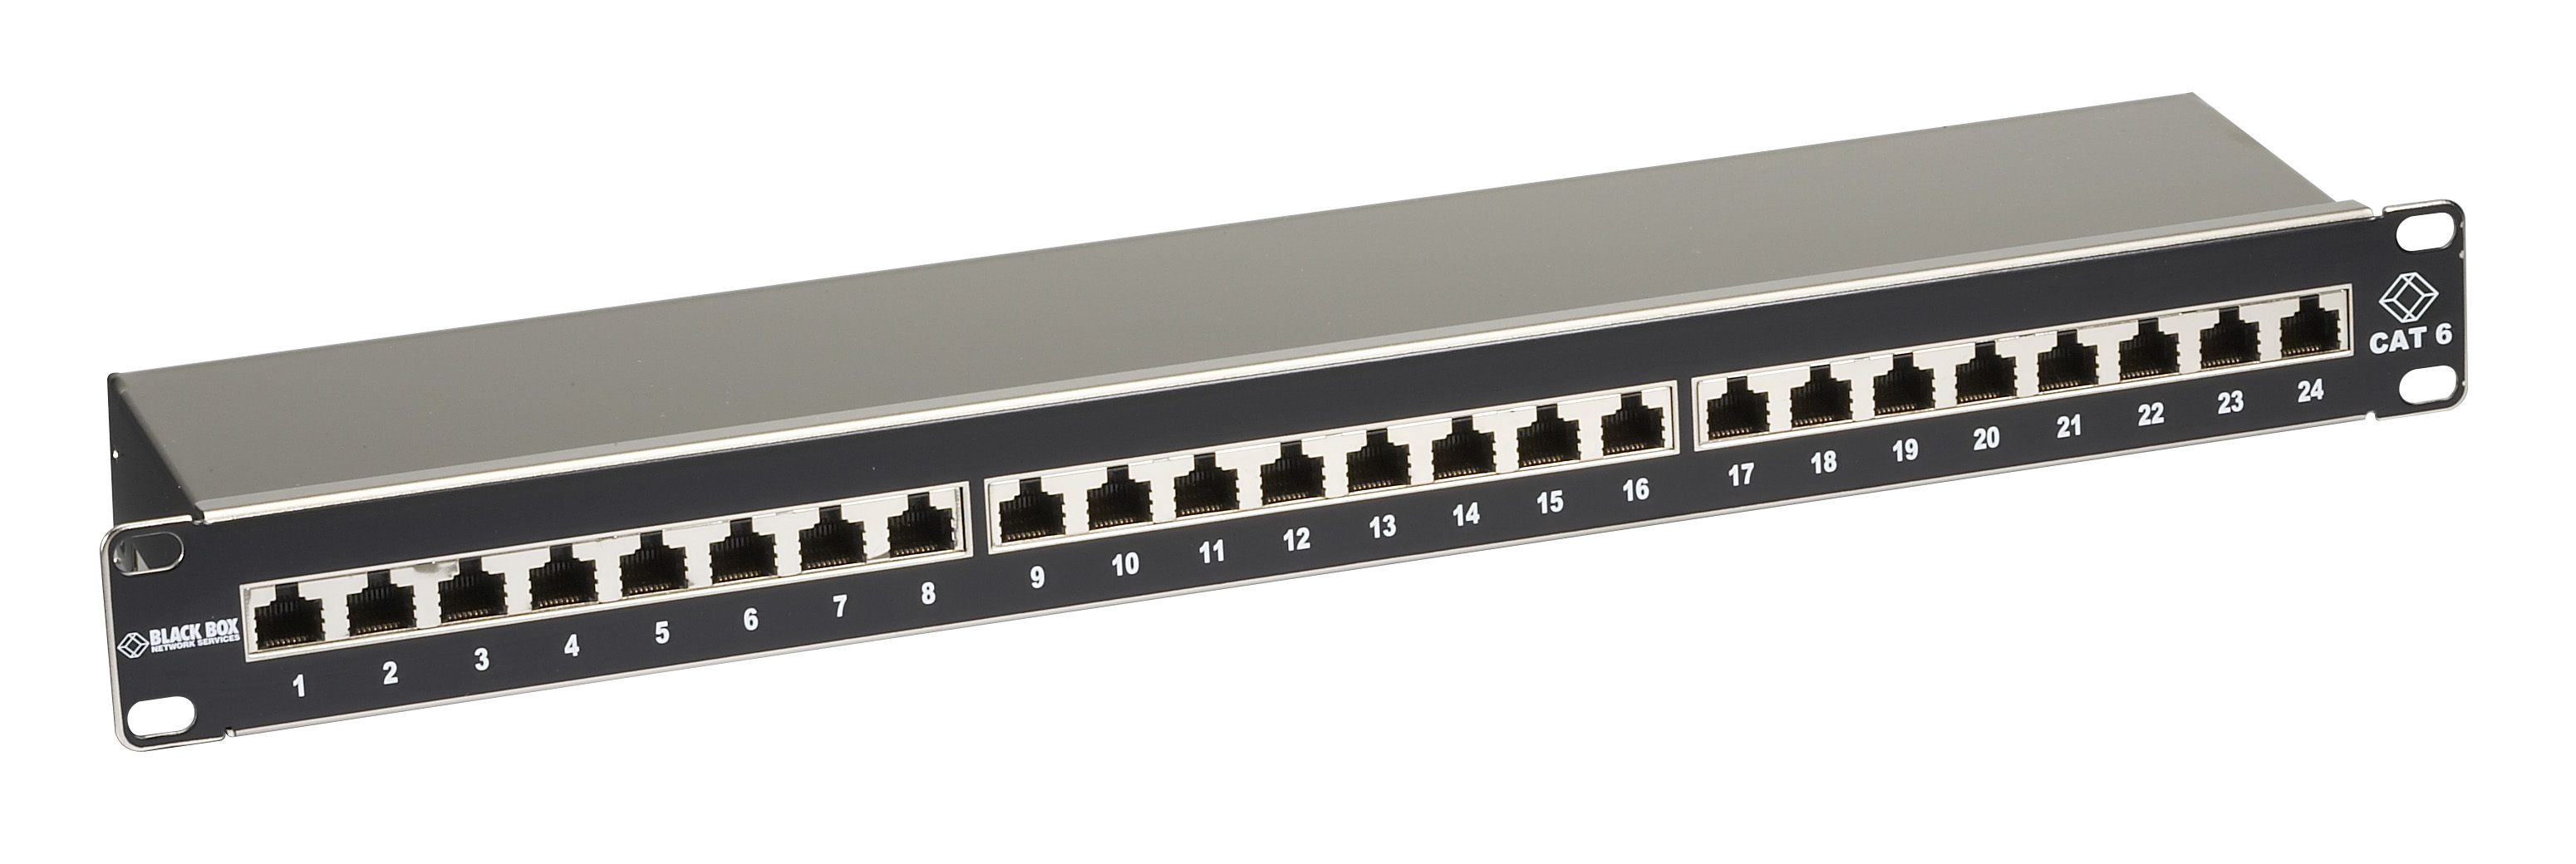 1u 24 Port Cat6 Shielded Patch Panel Black Box 19 Wiring Diagram Additional Product Image